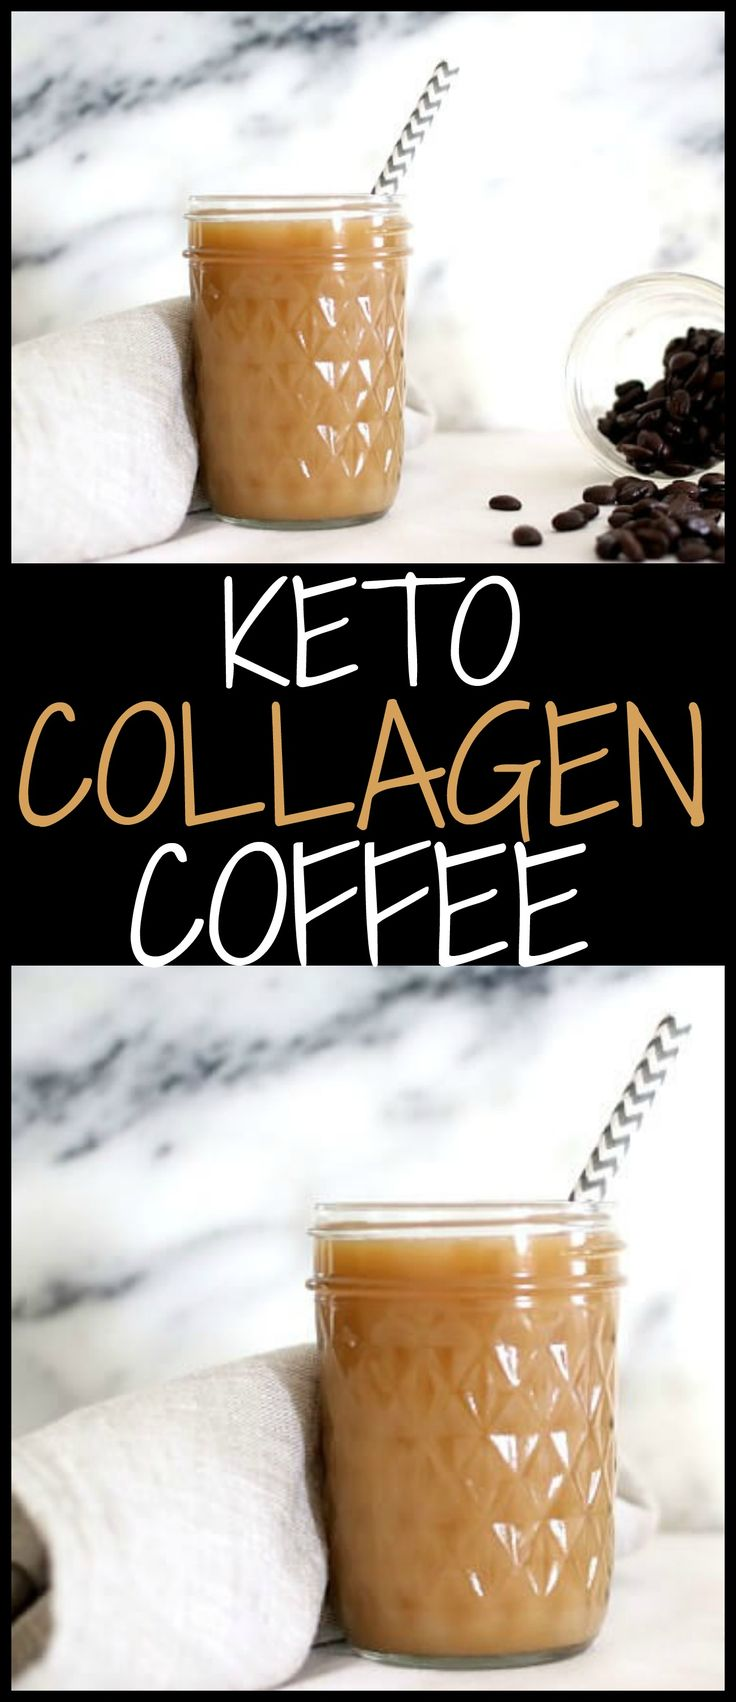 https://www.furtherfood.com/recipe/keto-bulletproof-collagen-coffee-ghee-mct-oil/